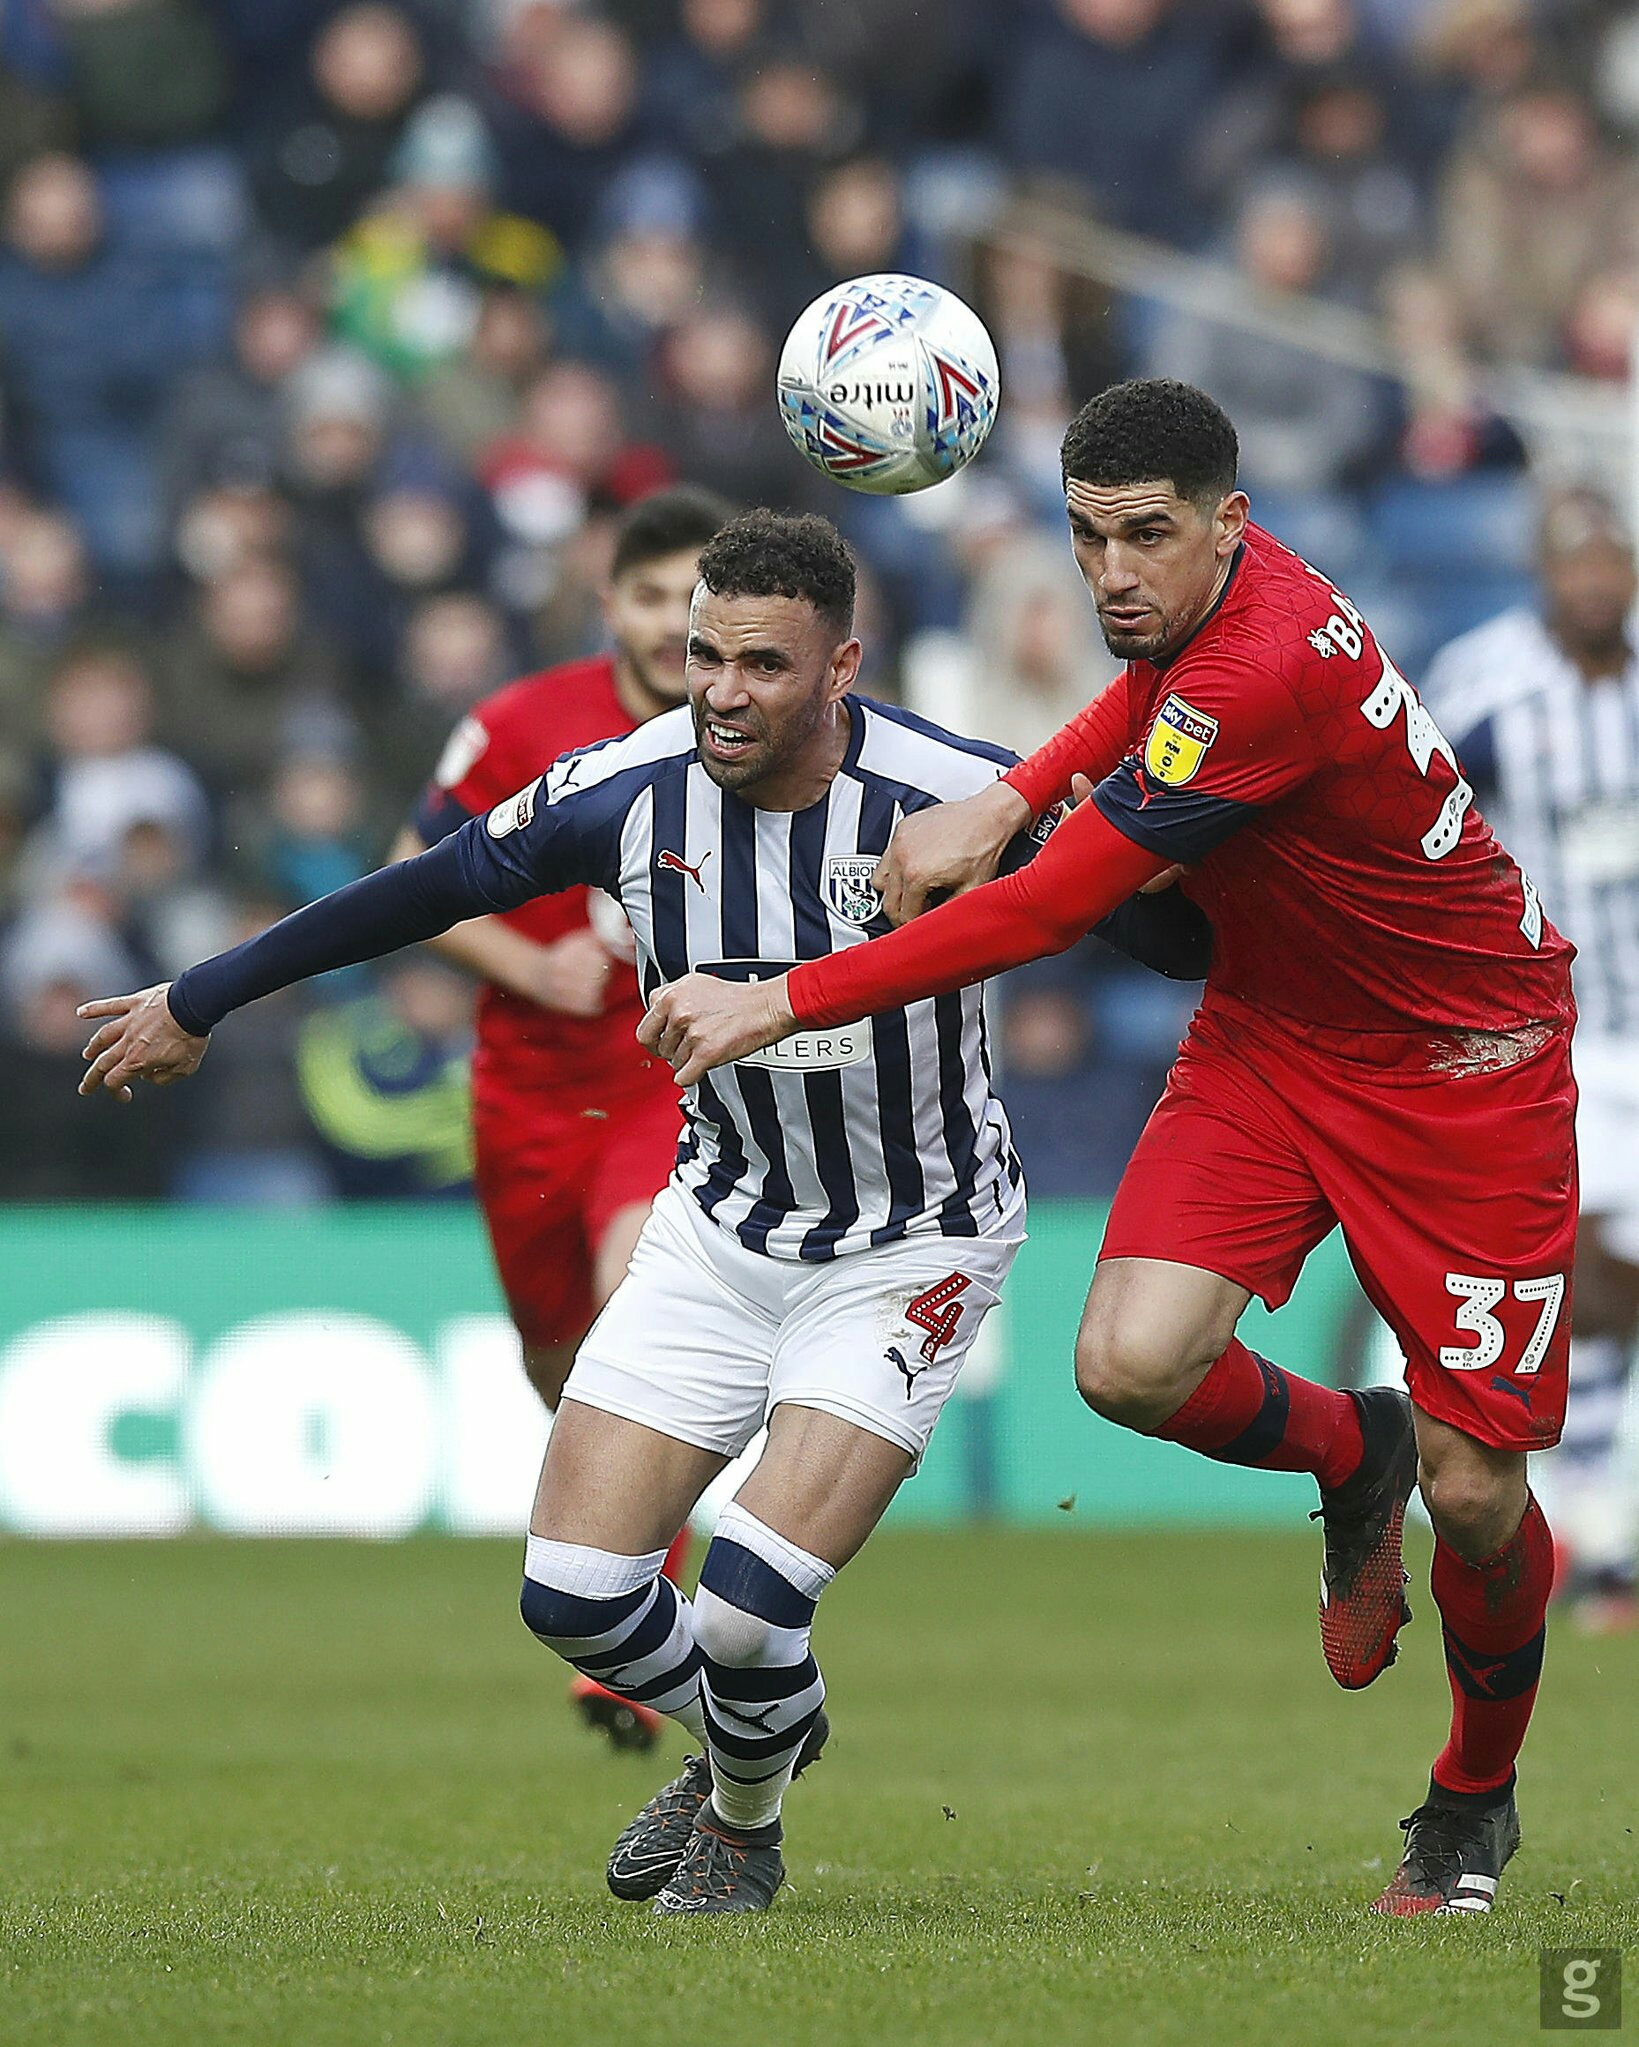 Balogun Plays Down Influence At Wigan Athletic